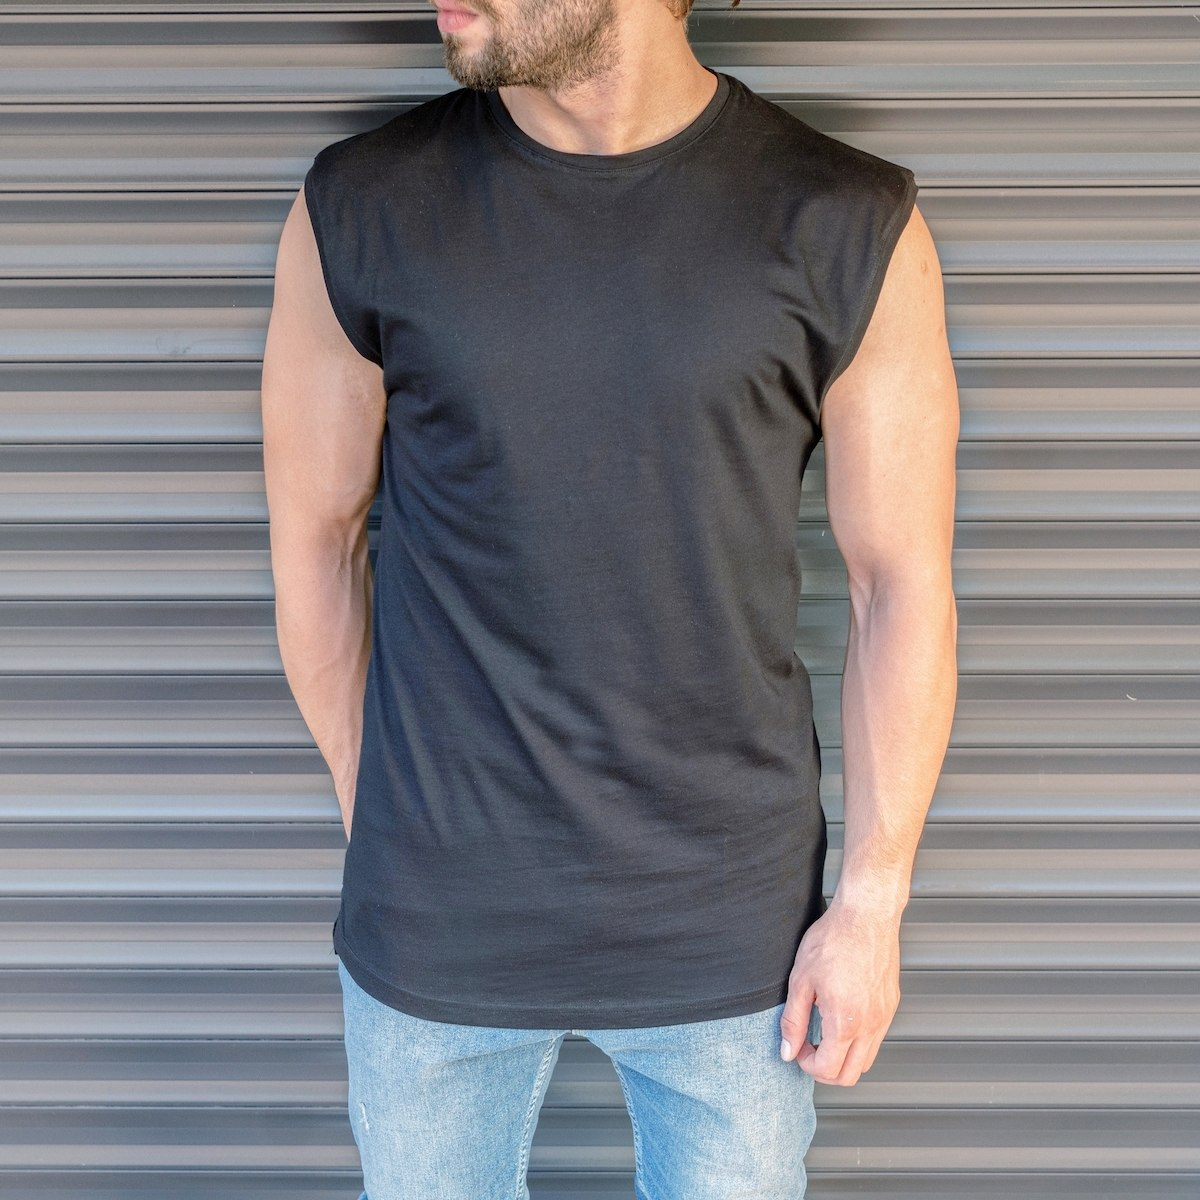 Men's Basic Sleeveless...